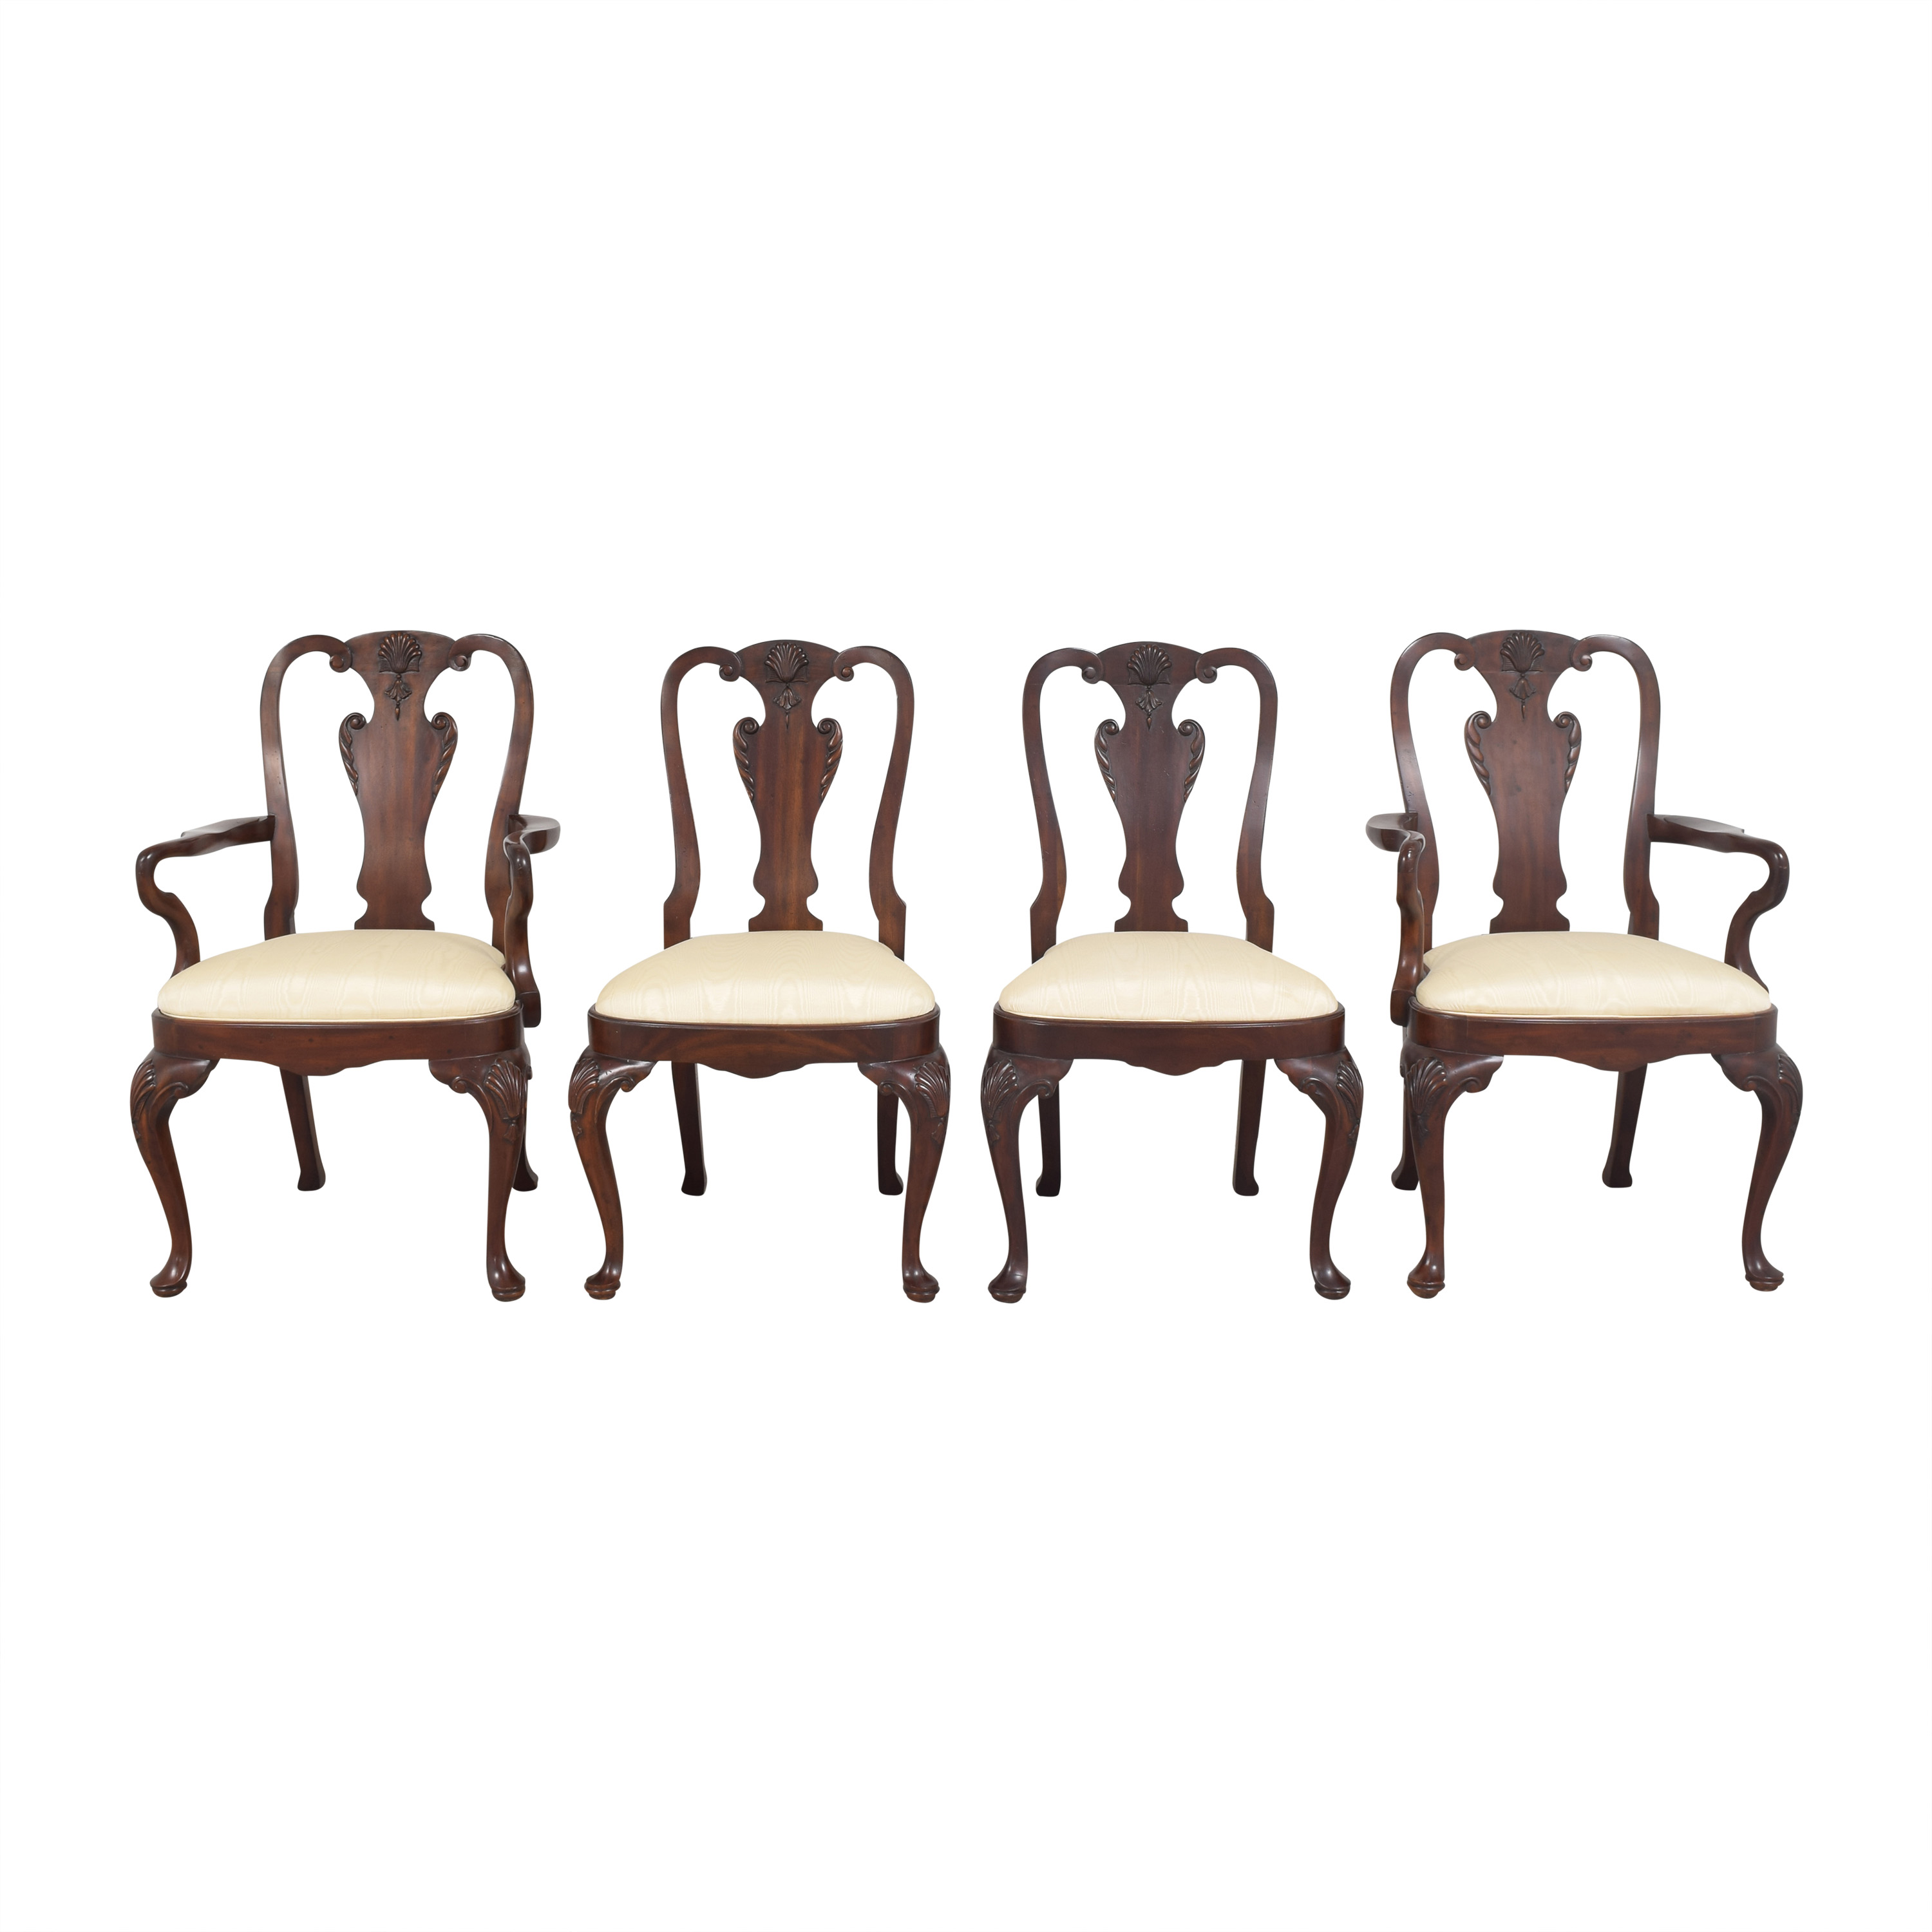 buy Maitland-Smith Regency Dining Chairs Maitland-Smith Dining Chairs